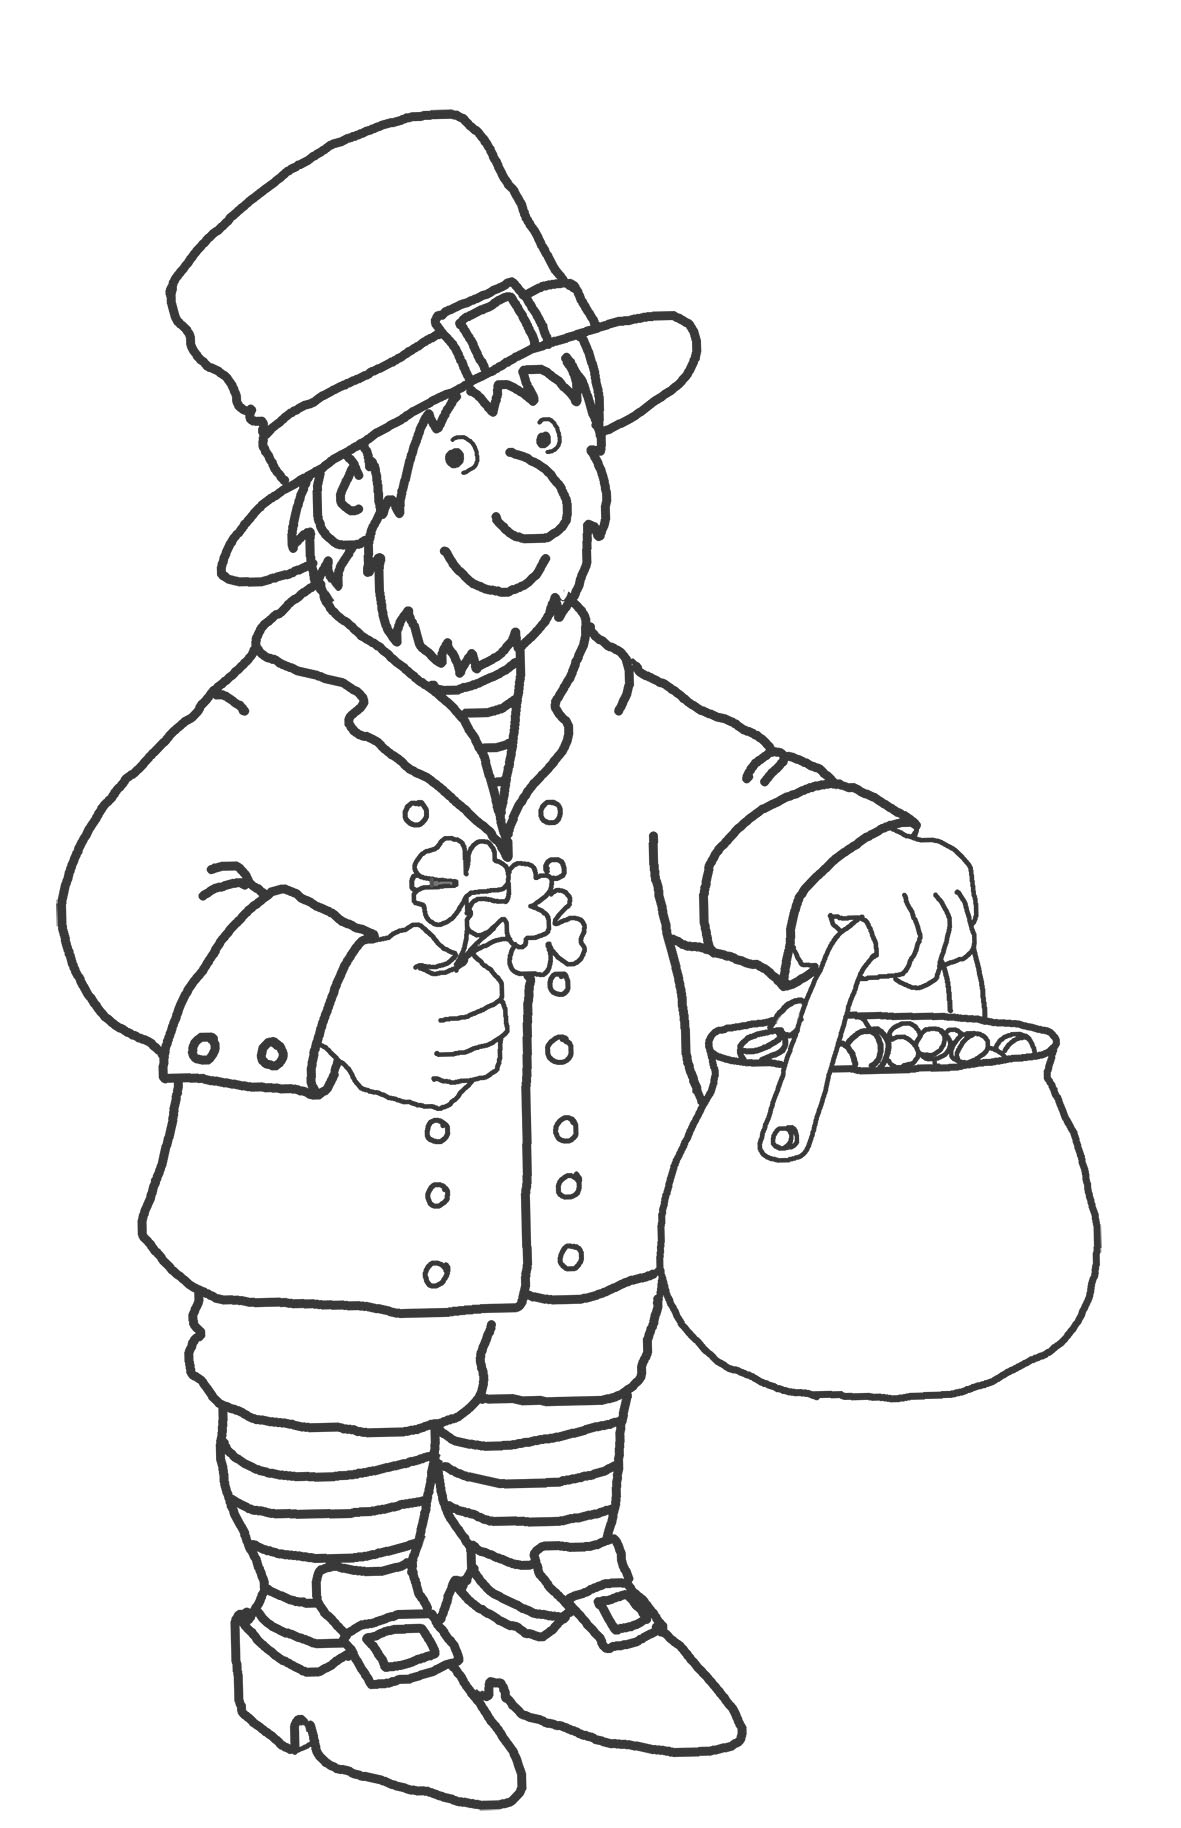 coloring page with leprechaun for st. Patrick's day